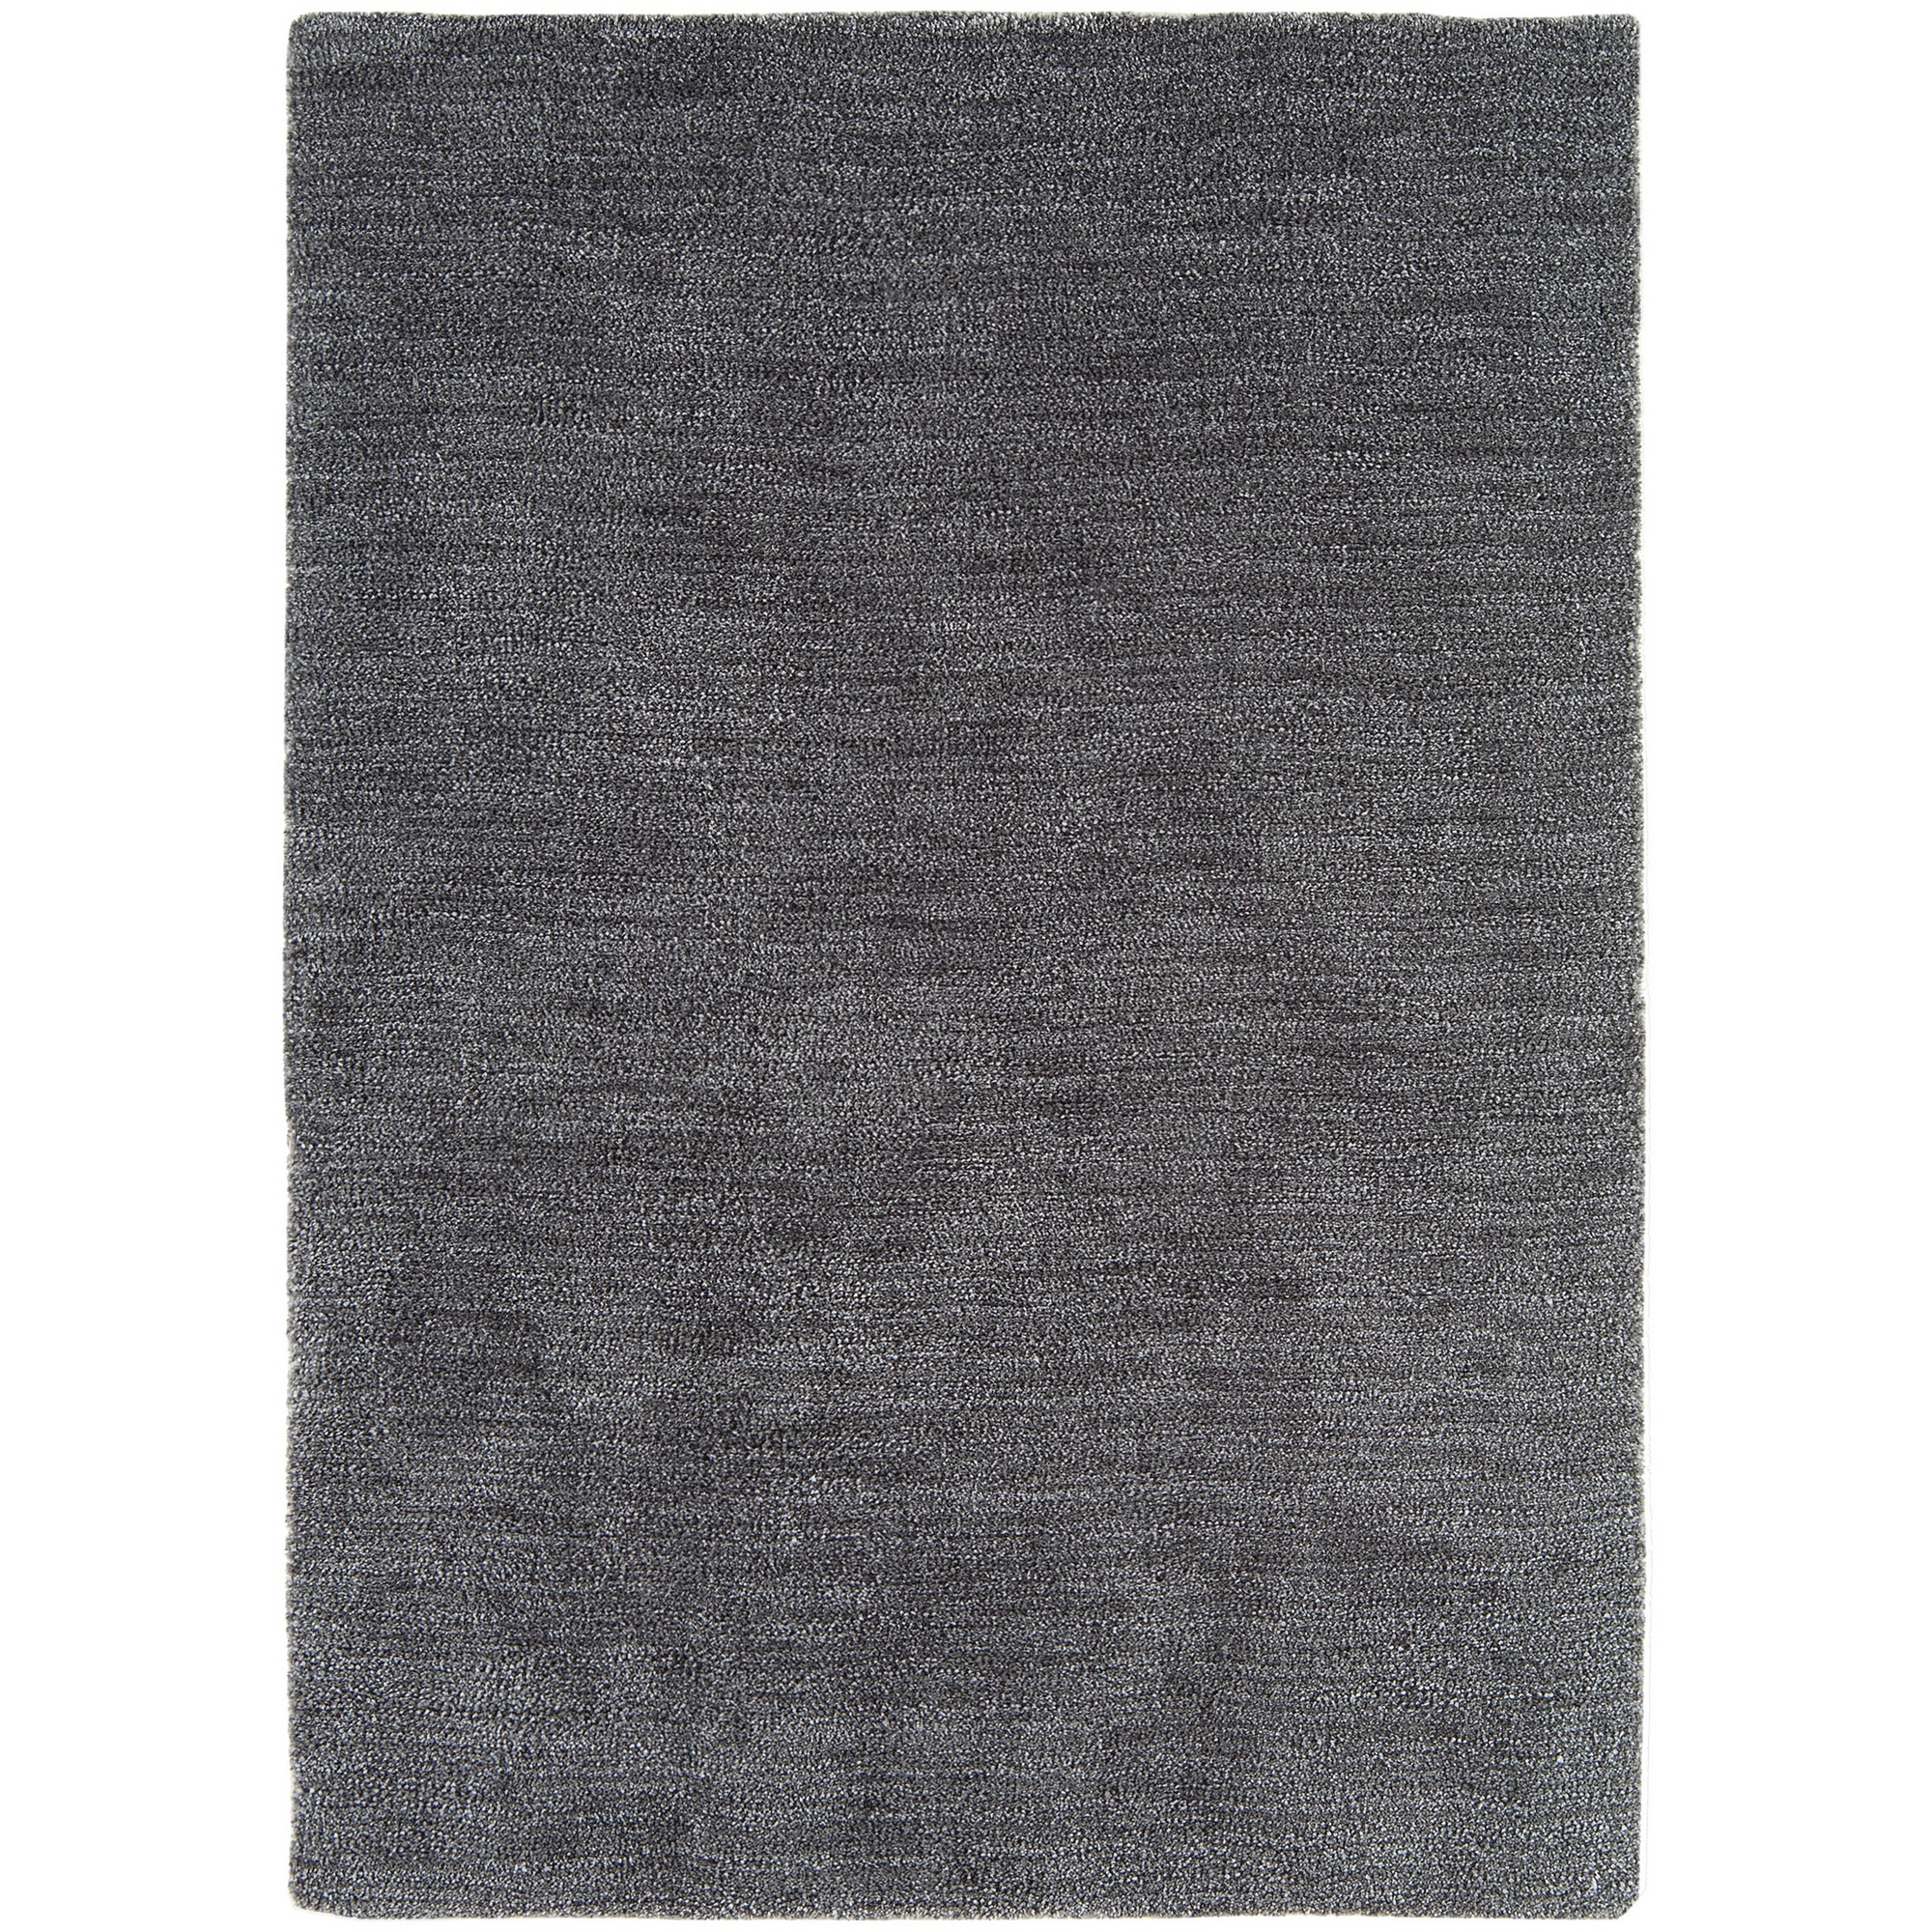 Tula Plain Rugs in Grey